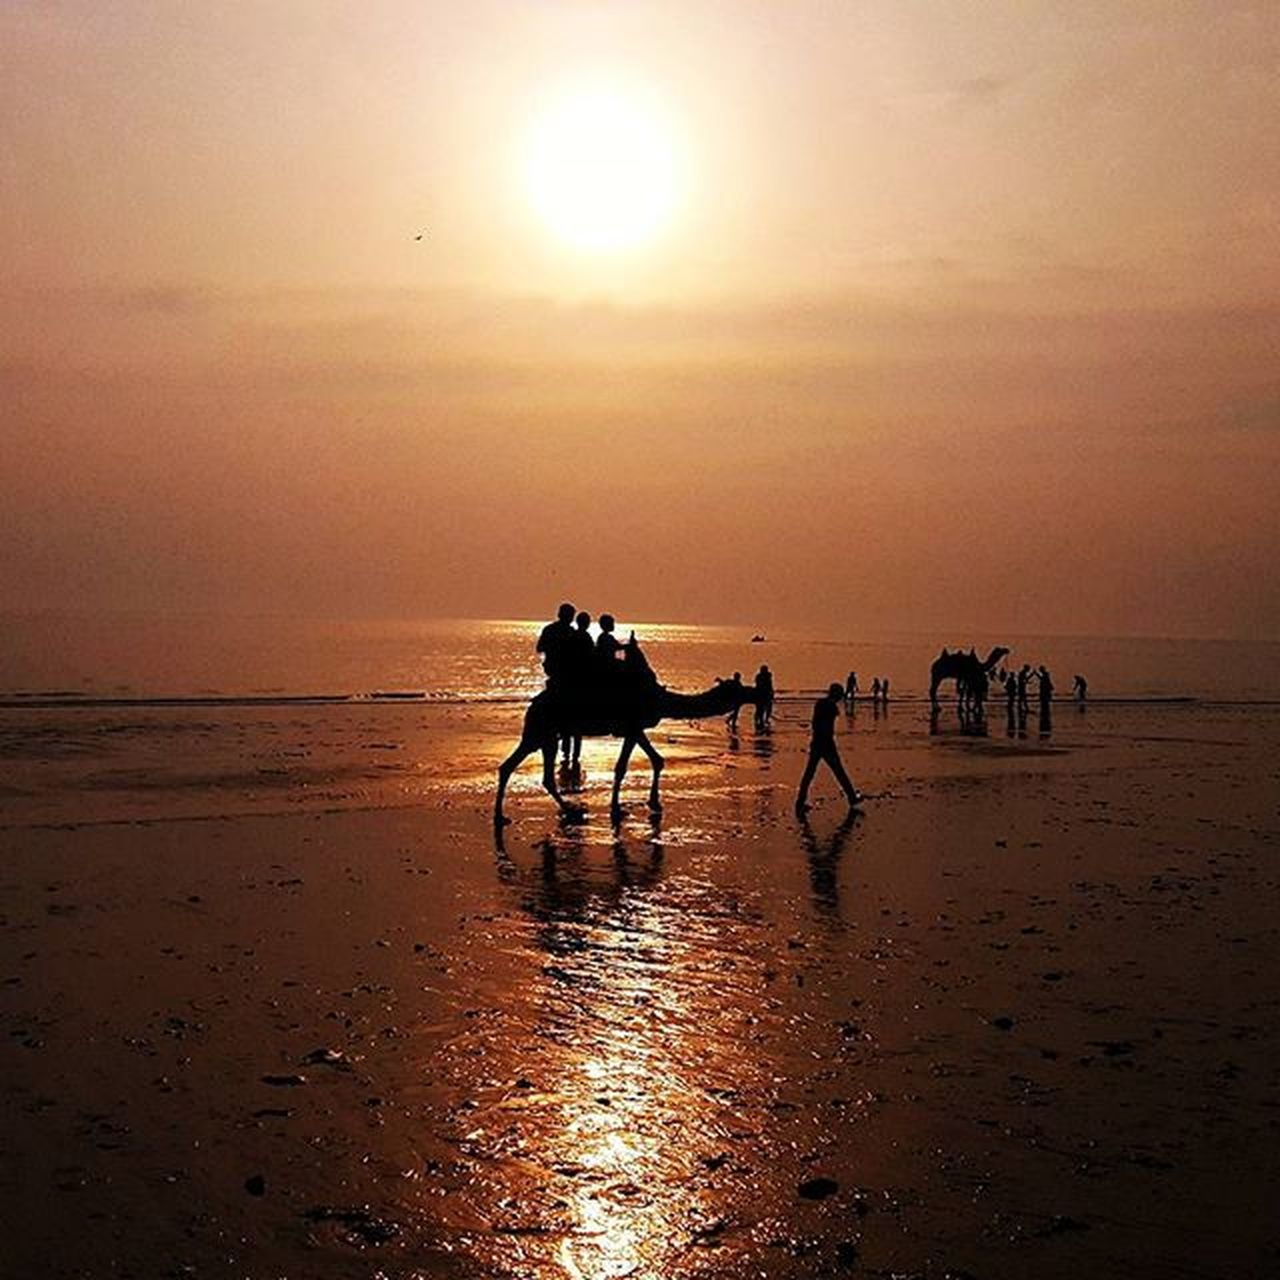 sunset, beach, sea, water, nature, sand, sun, beauty in nature, horizon over water, shore, scenics, sky, tranquil scene, reflection, silhouette, tranquility, idyllic, outdoors, domestic animals, men, leisure activity, vacations, mammal, real people, people